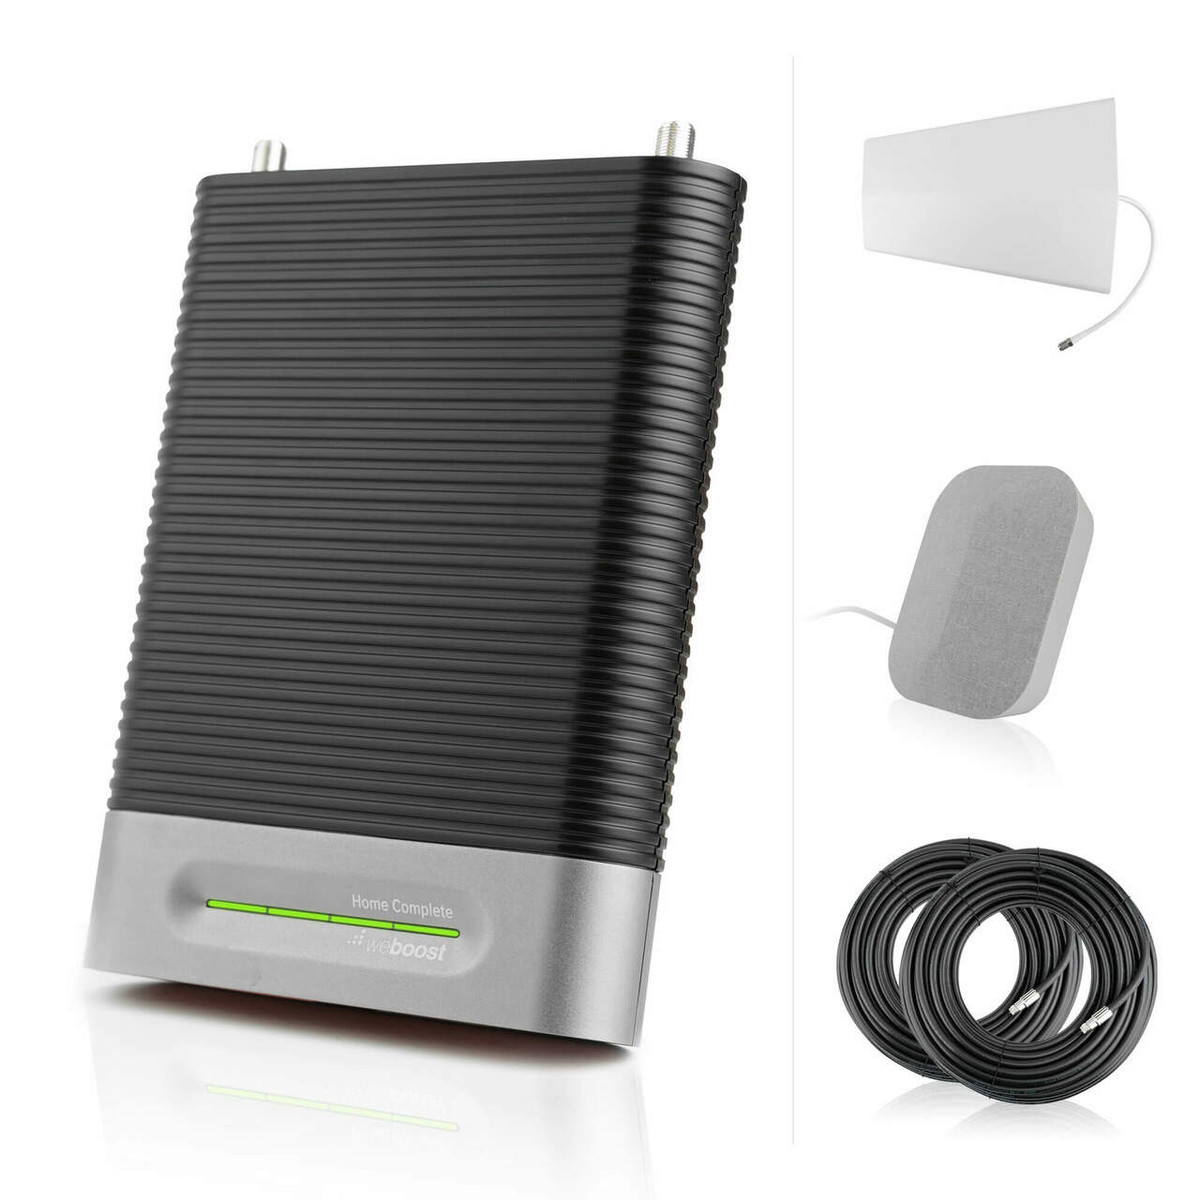 weBoost weBoost Home Complete Cell Phone Signal Booster Kit, Refurbished or 470145R